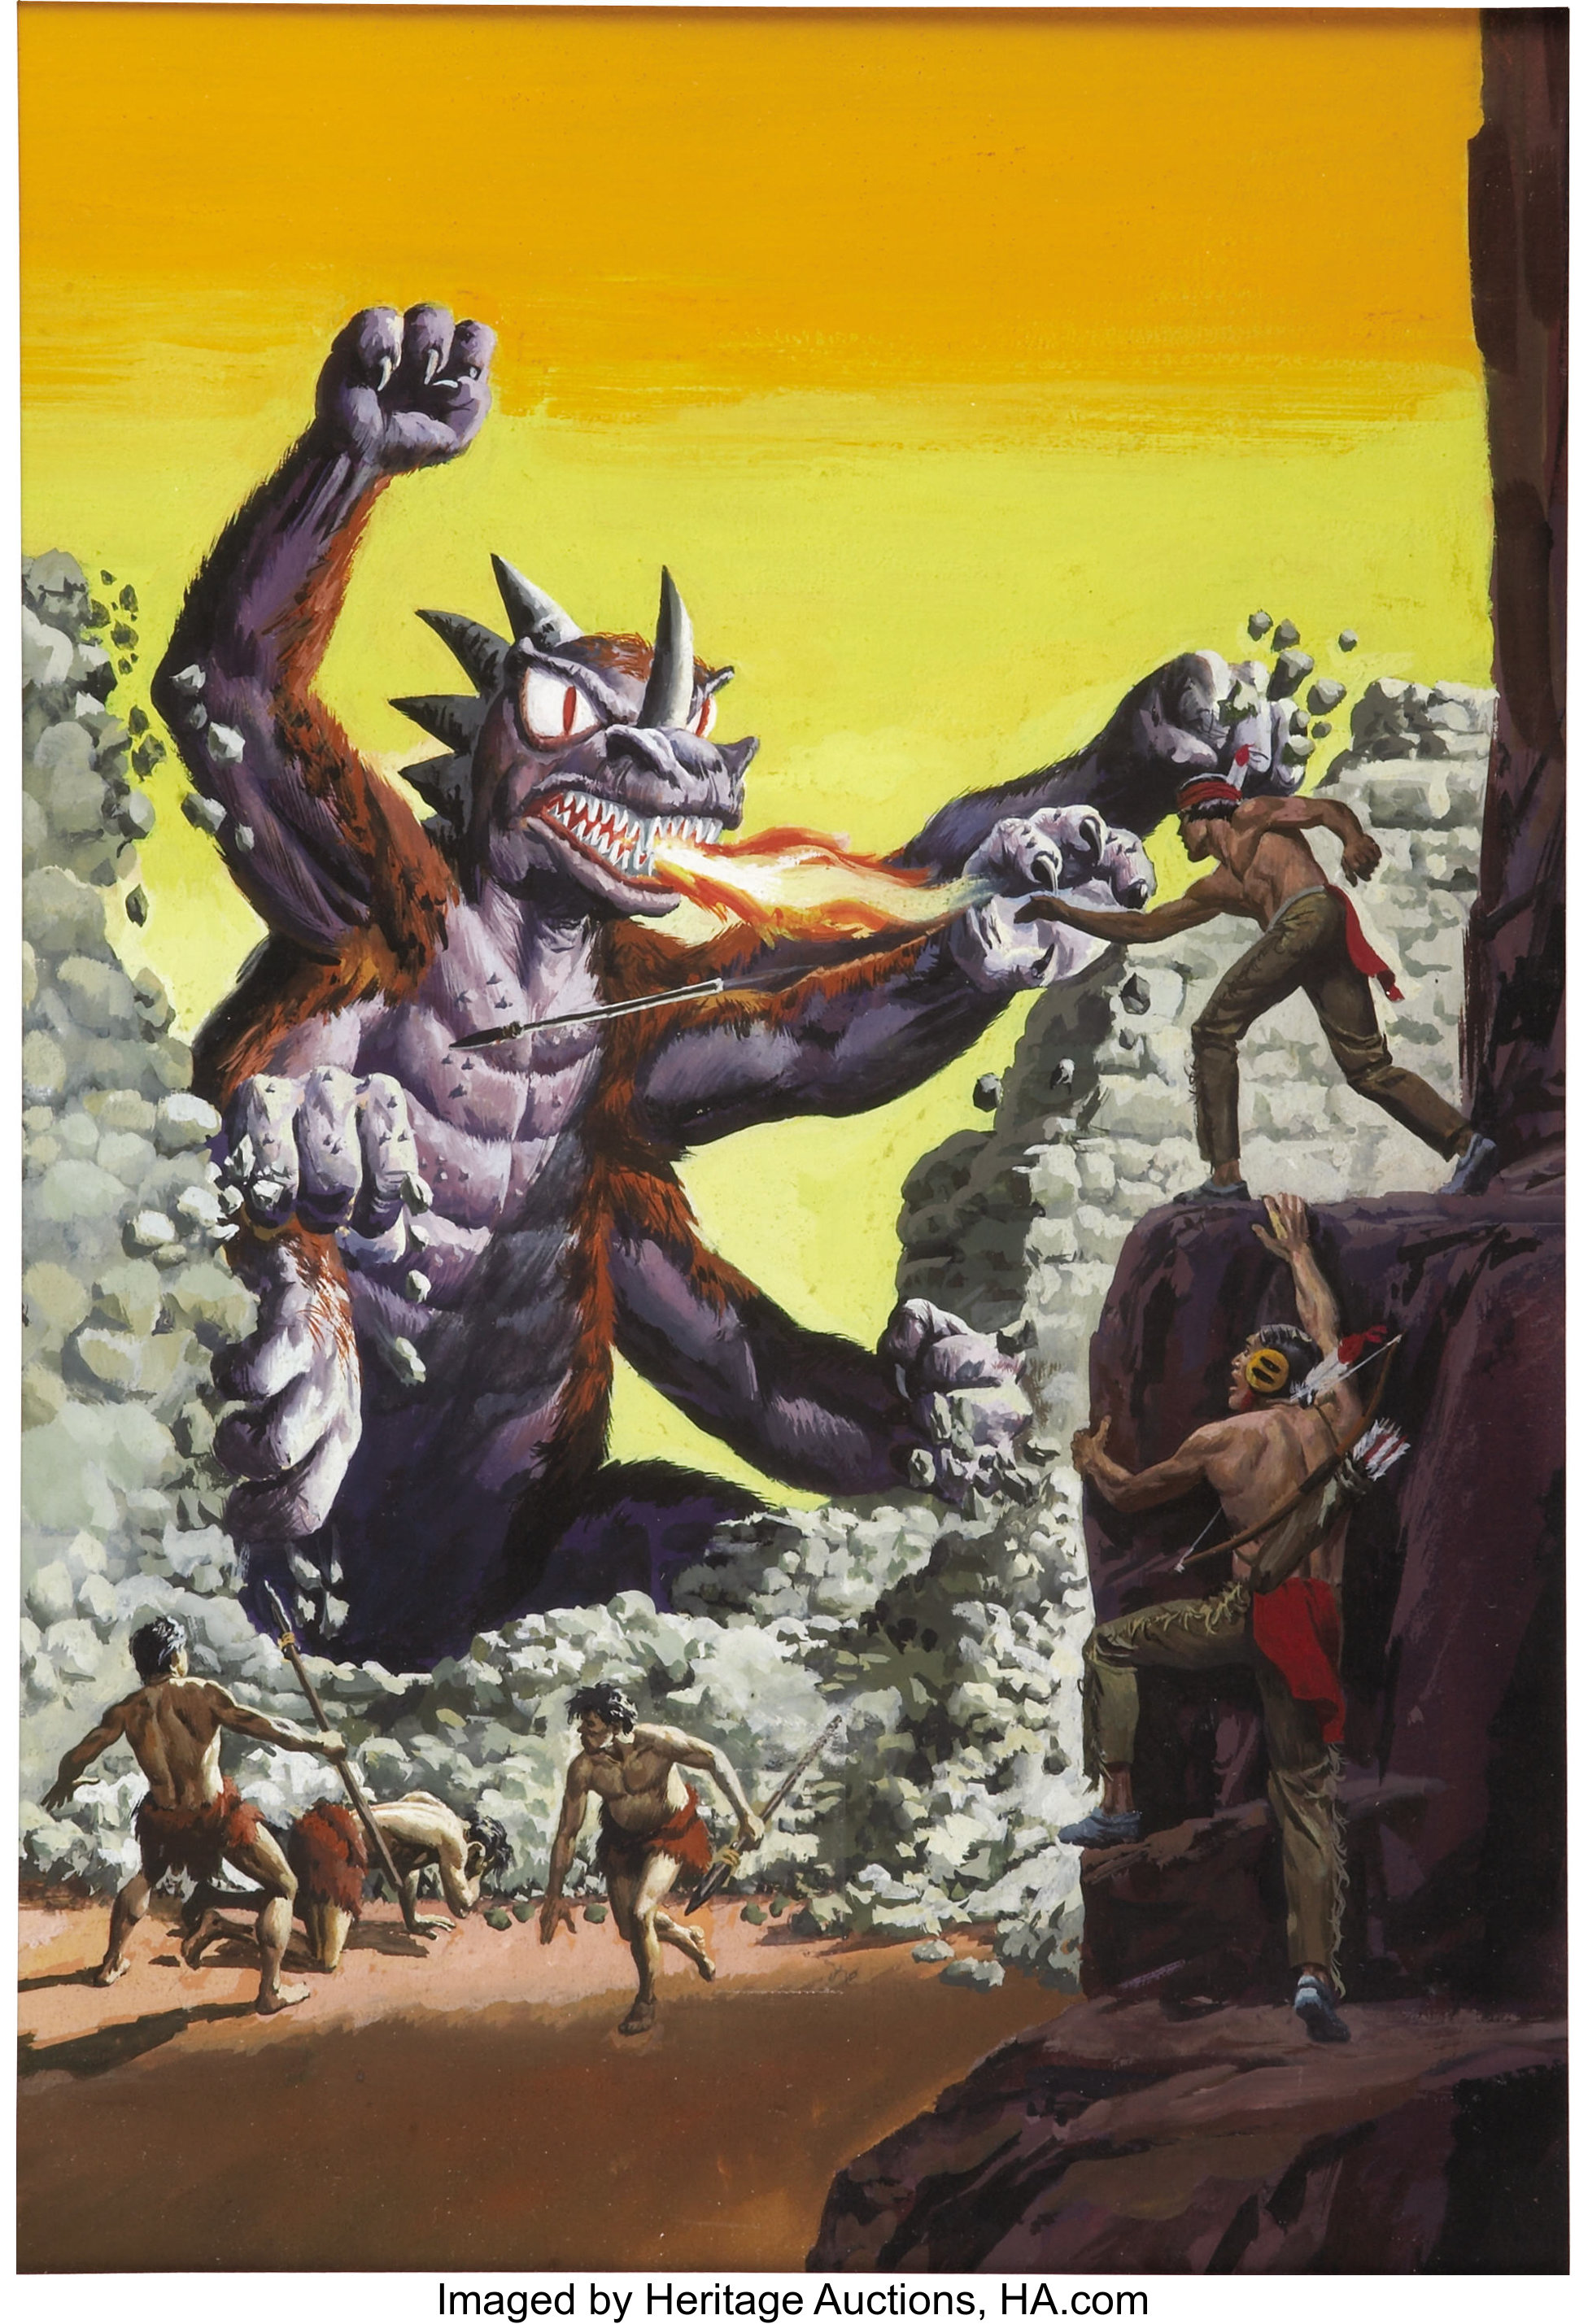 George Wilson Turok Son Of Stone 46 Cover Original Art Gold Lot 43569 Heritage Auctions